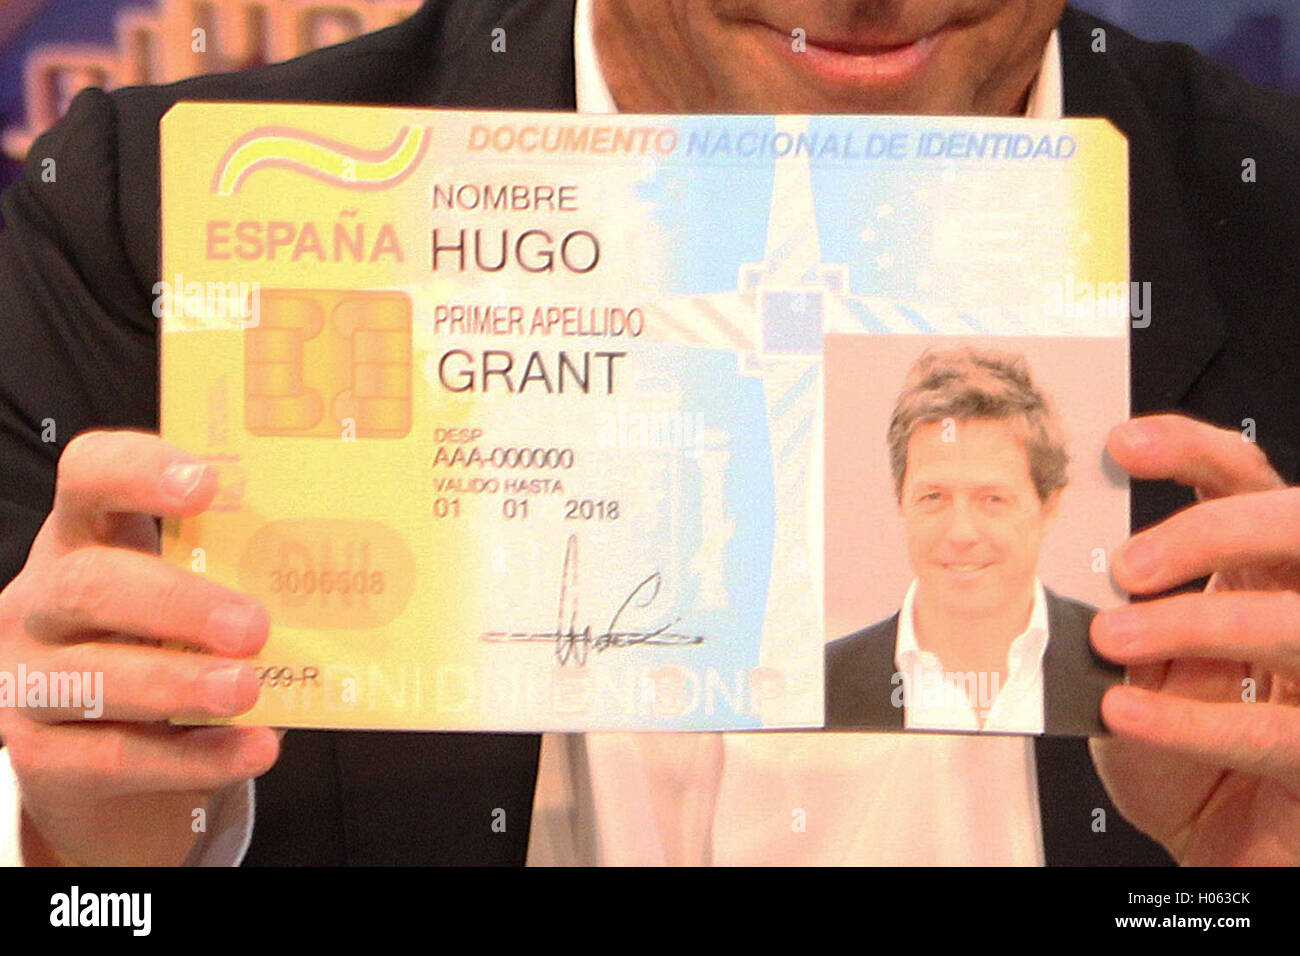 Grant Stock During 120606995 Madrid Hugh September Photo - Actor Alamy A Visit 19th 2016 Spain